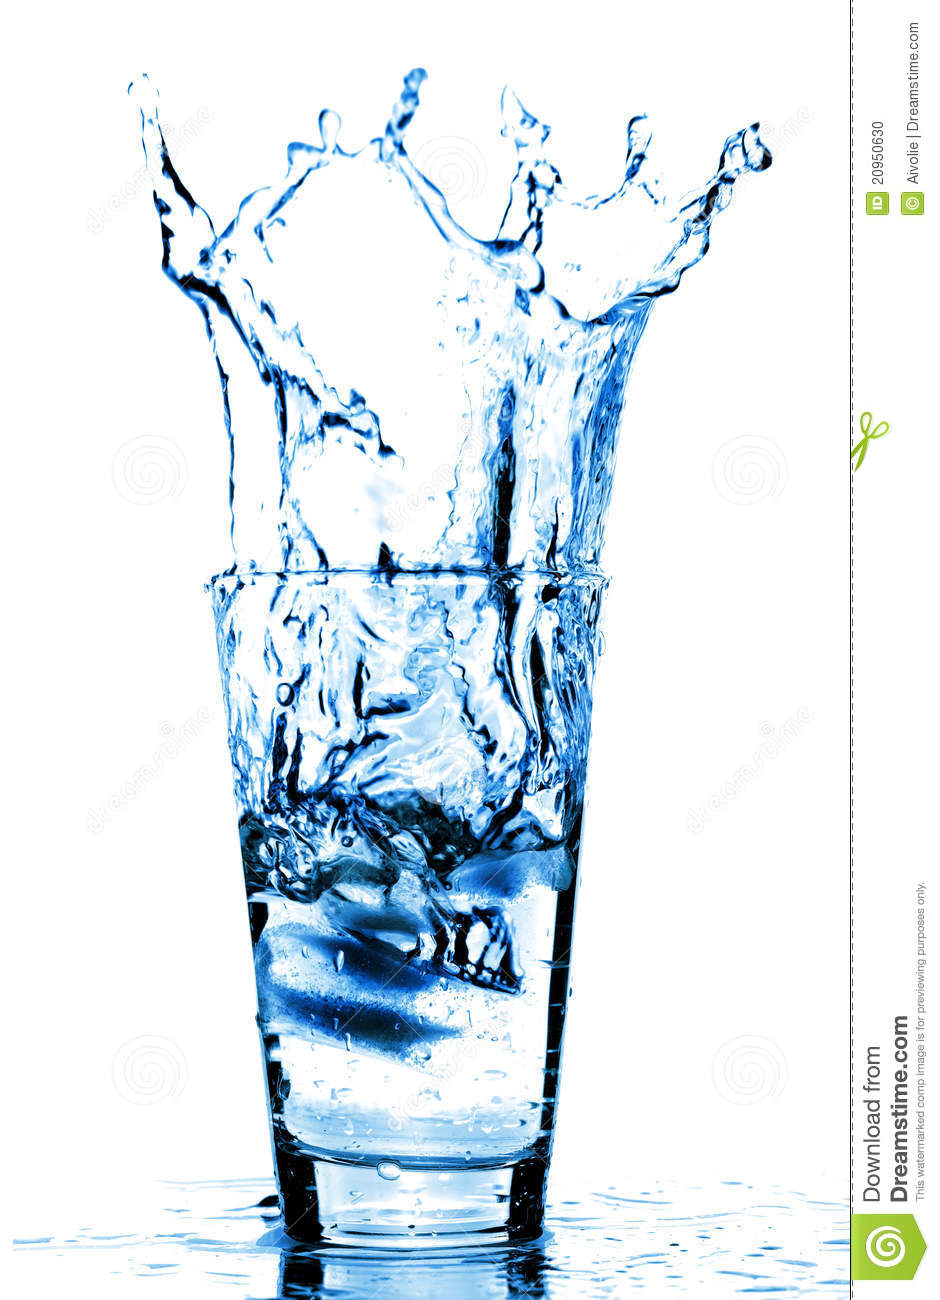 Ice Cubes Splashing Into Glass Of Wate Stock Photo Image